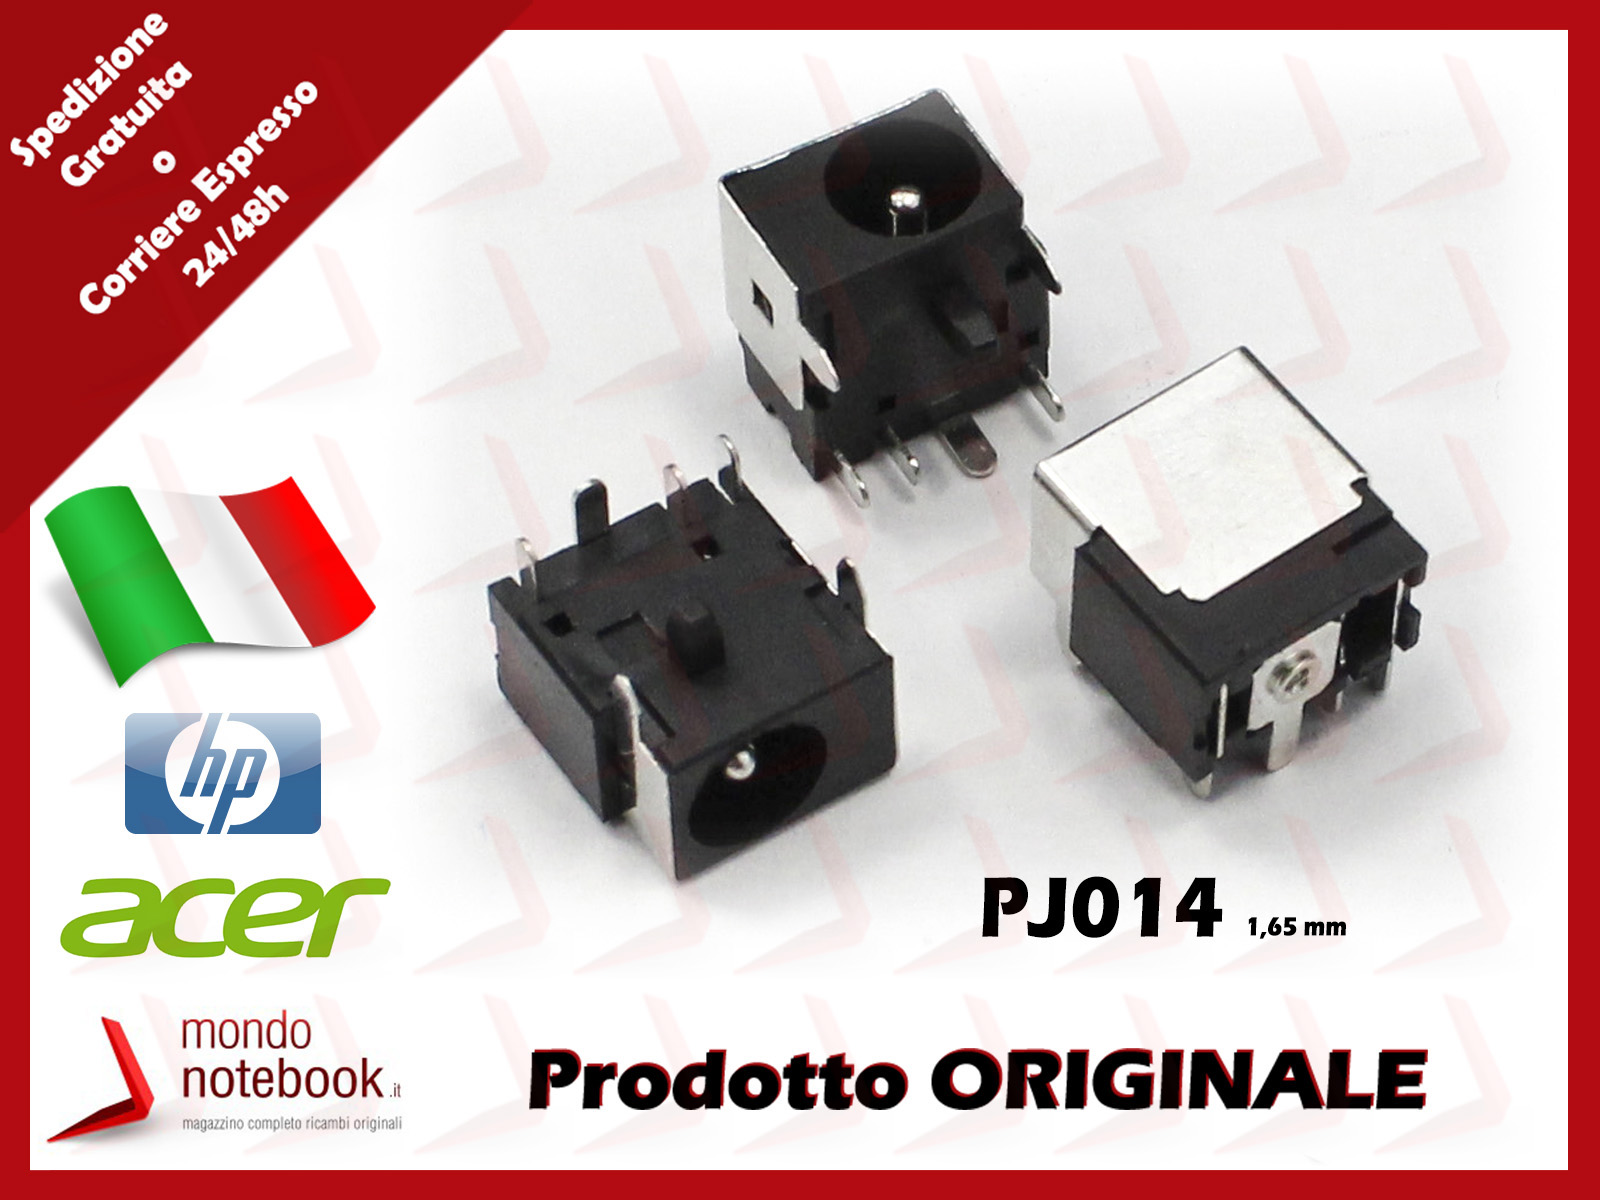 Connettore Di Alimentazione Per Hp Pavilion Zt3012ap Conector Latest Technology Computers/tablets & Networking Laptop & Desktop Accessories